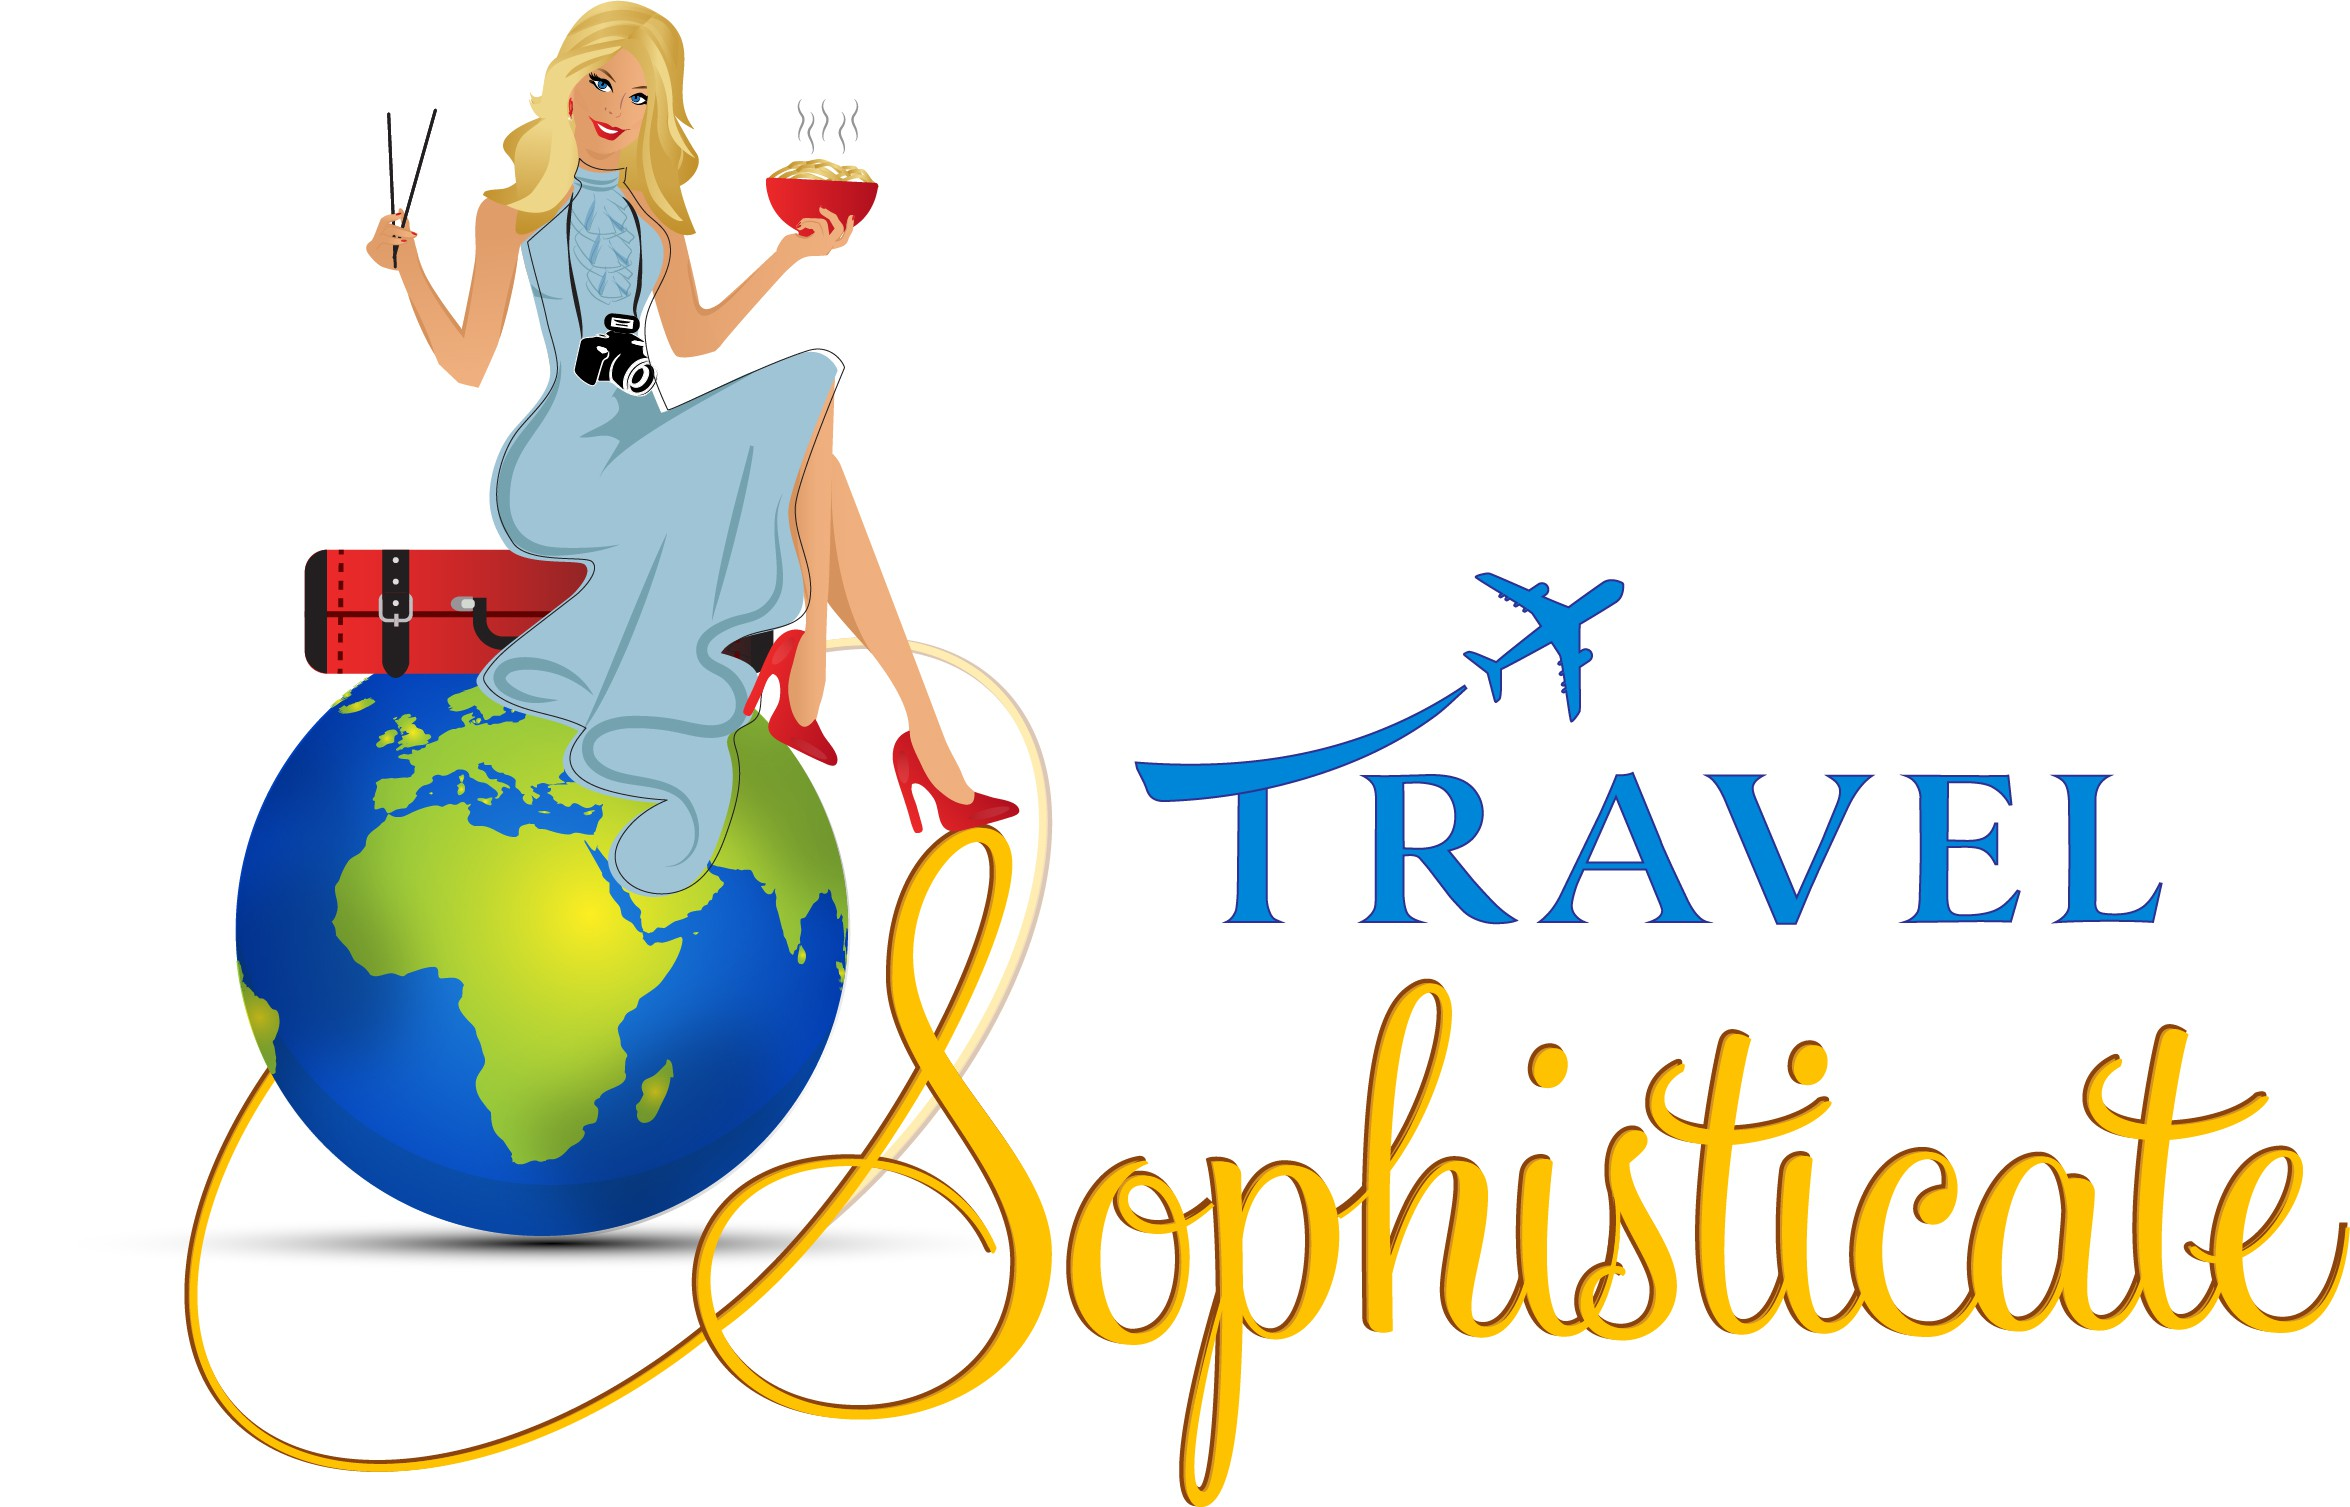 An amazing logo for a travel blog conveying sophistication and playfulness at the same time.